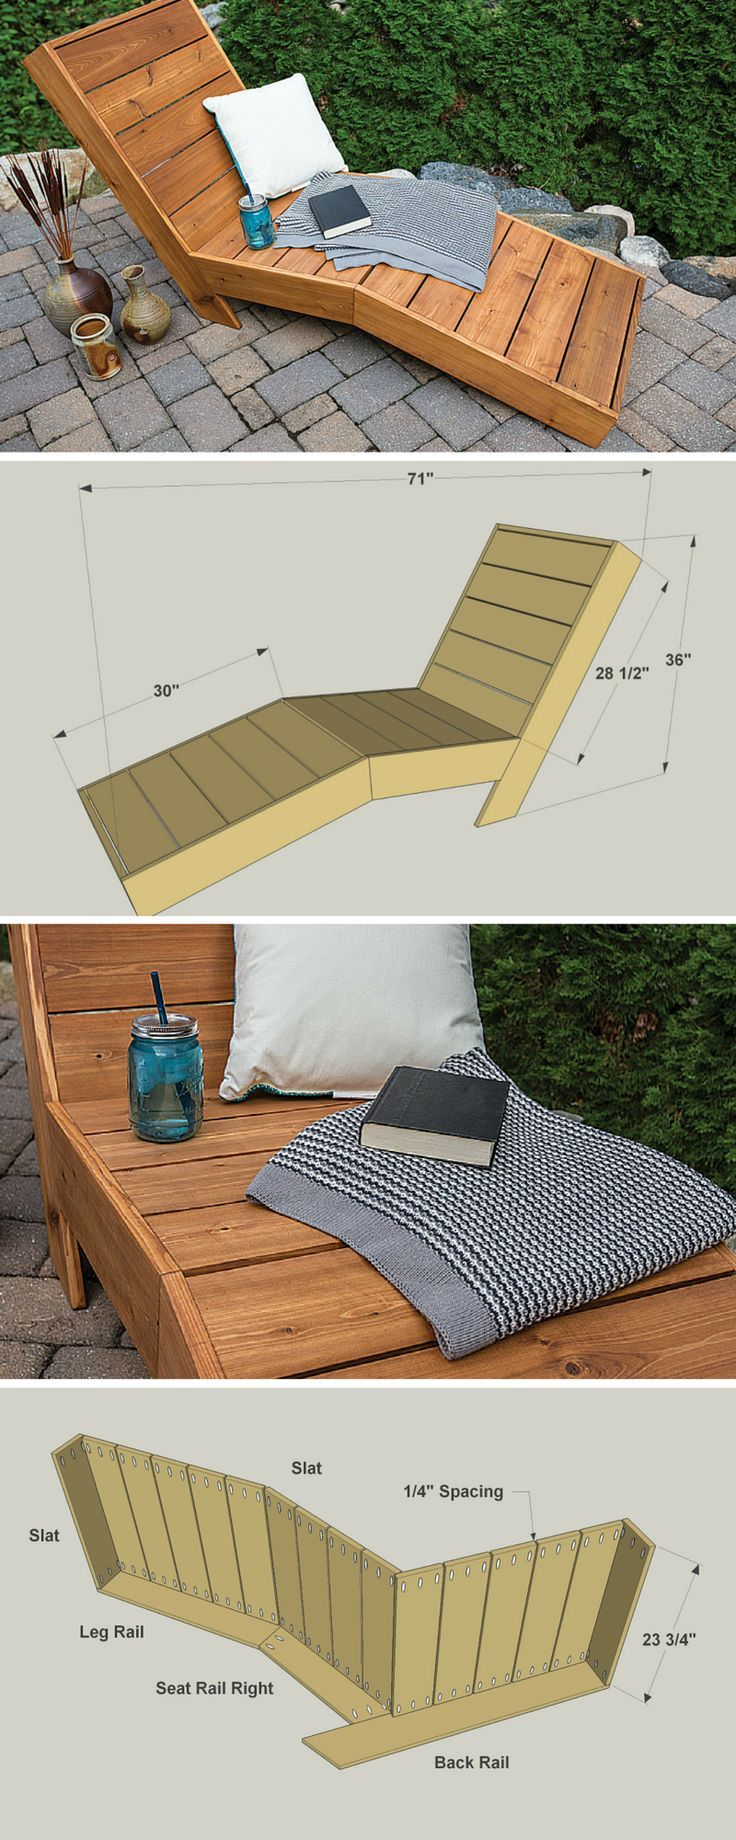 Kick back in comfort outside with this great-looking outdoor chaise lounge. It's built with a shape that cradles your body and keeps you from sliding down. The shape doesn't add much challenge to the build, though. Just cut a few pieces at an angle with your miter saw, and you're all set. FREE PLANS at buildsomething.com ähnliche tolle Projekte und Ideen wie im Bild vorgestellt findest du auch in unserem Magazin . Wir freuen uns auf deinen Besuch. Liebe Grüße Mimi